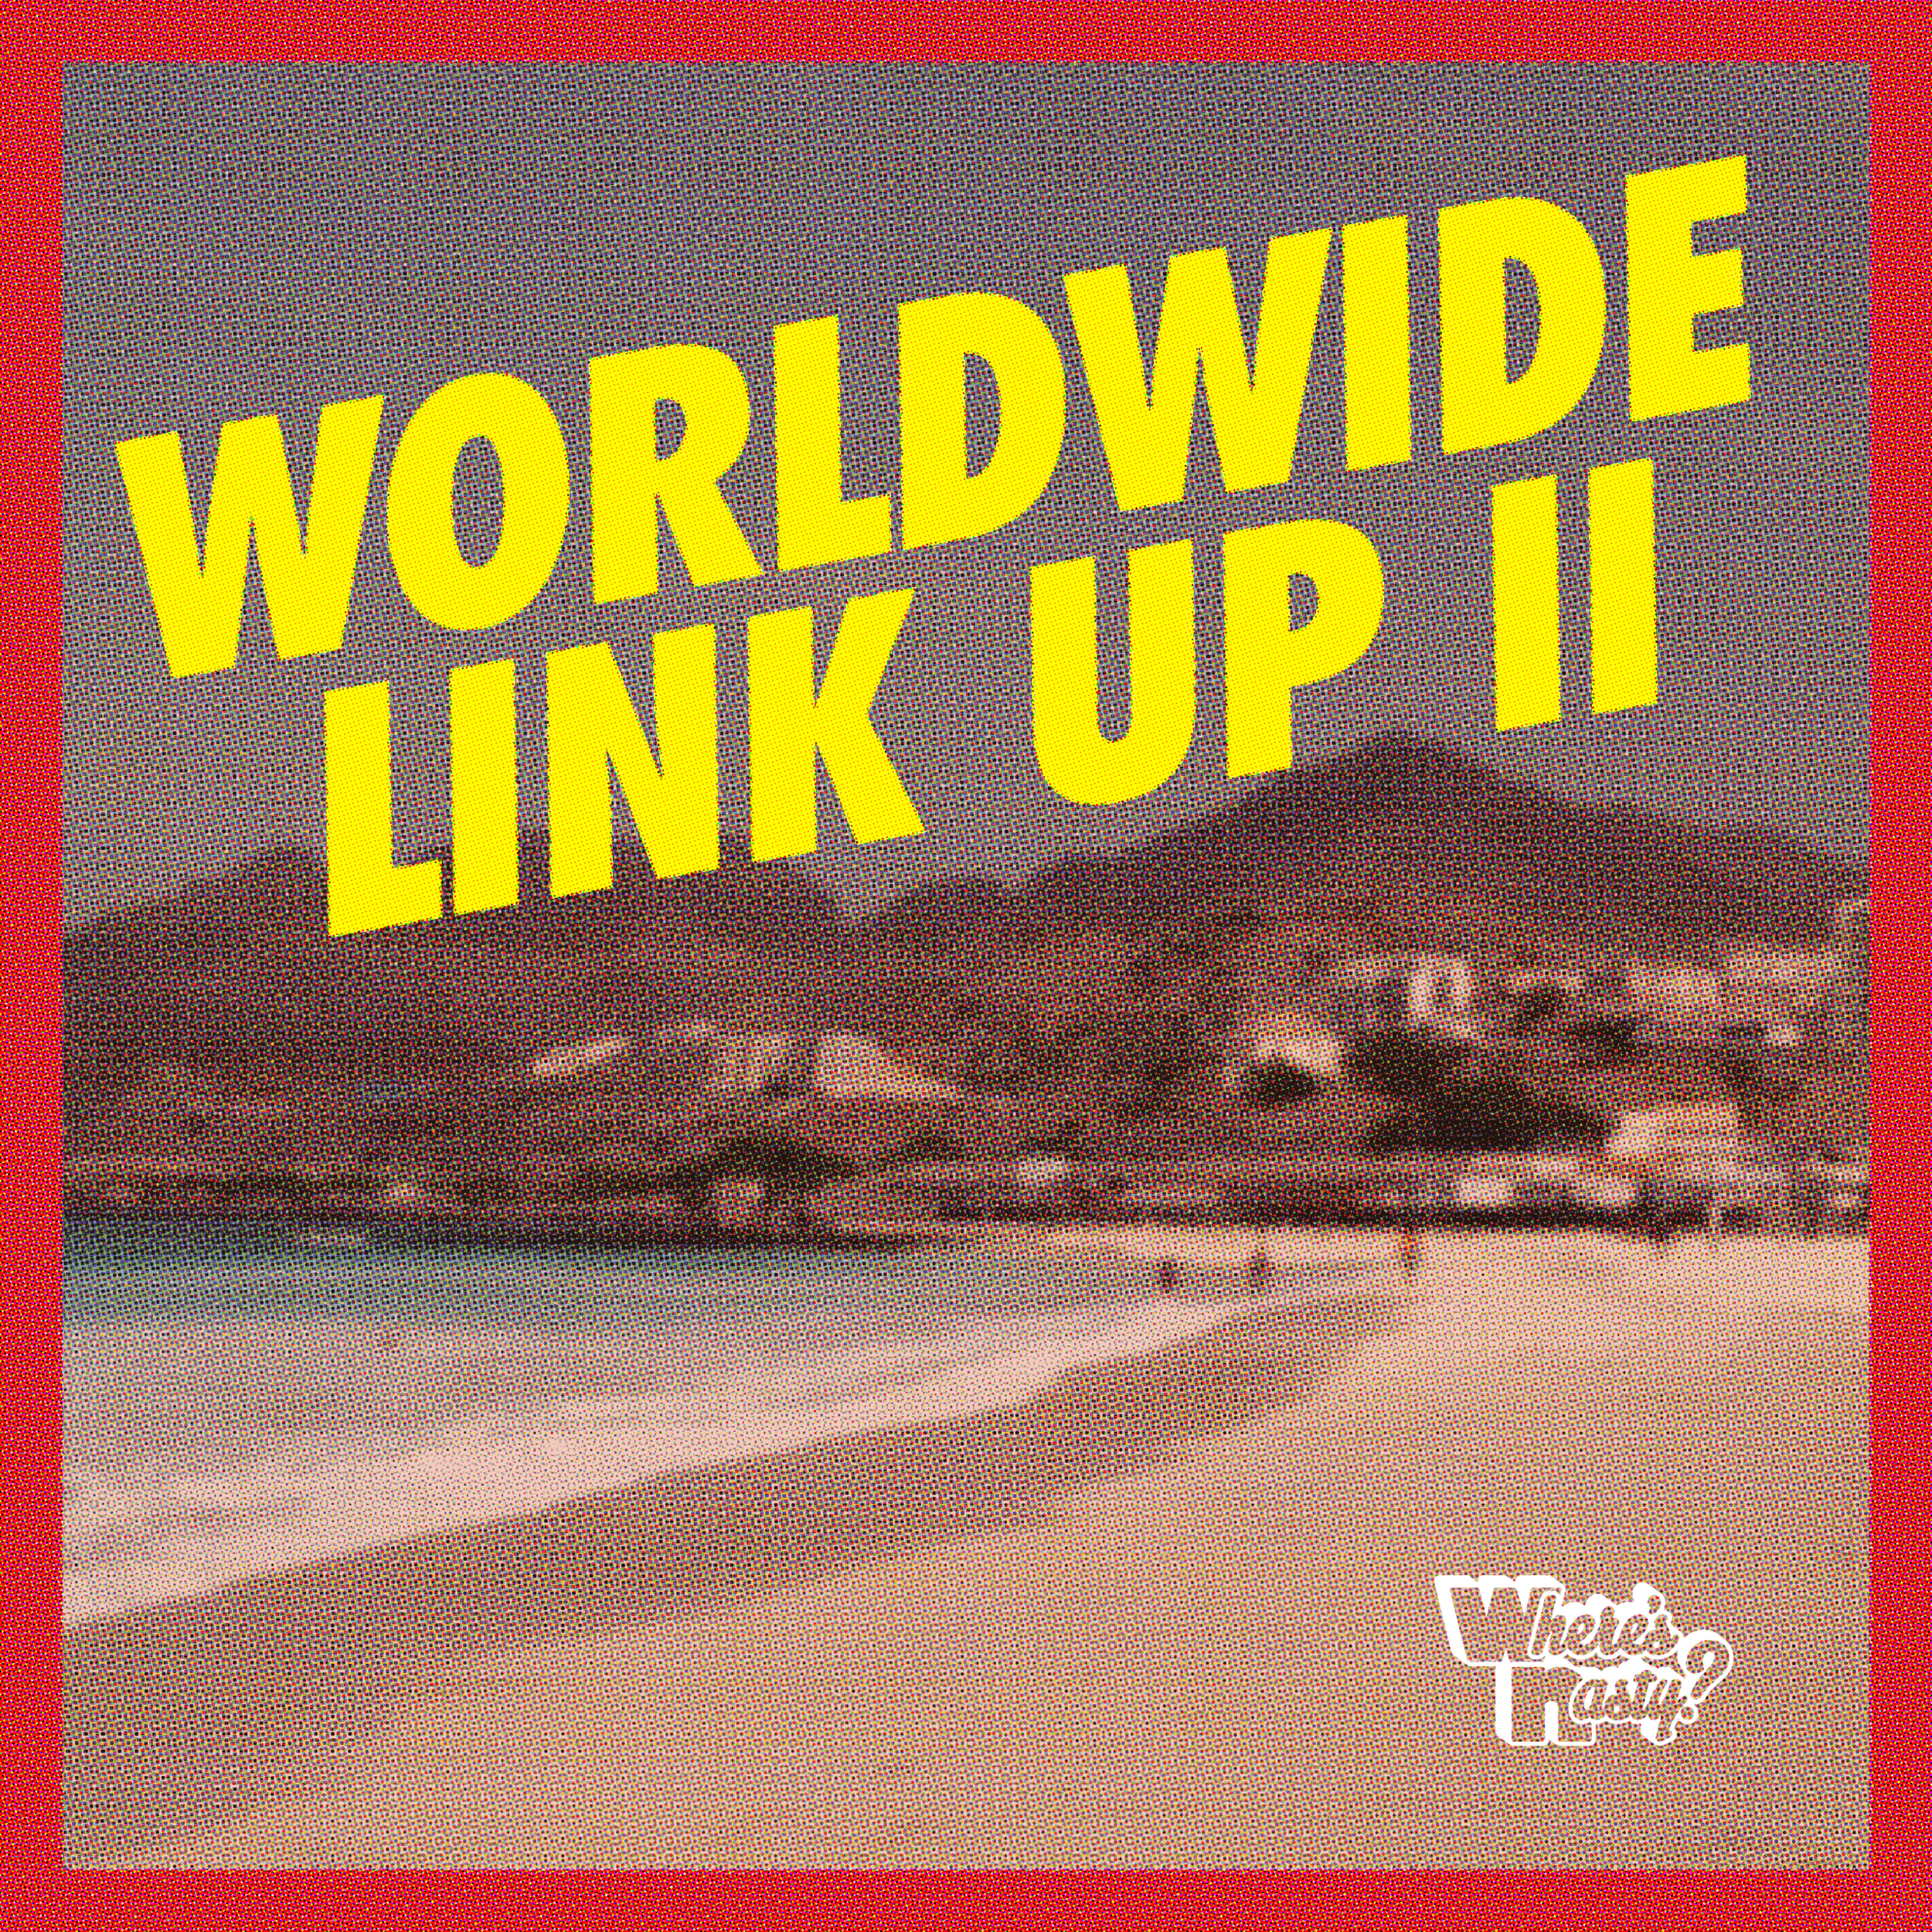 2018_Worldwide Link Up 2 (front).png